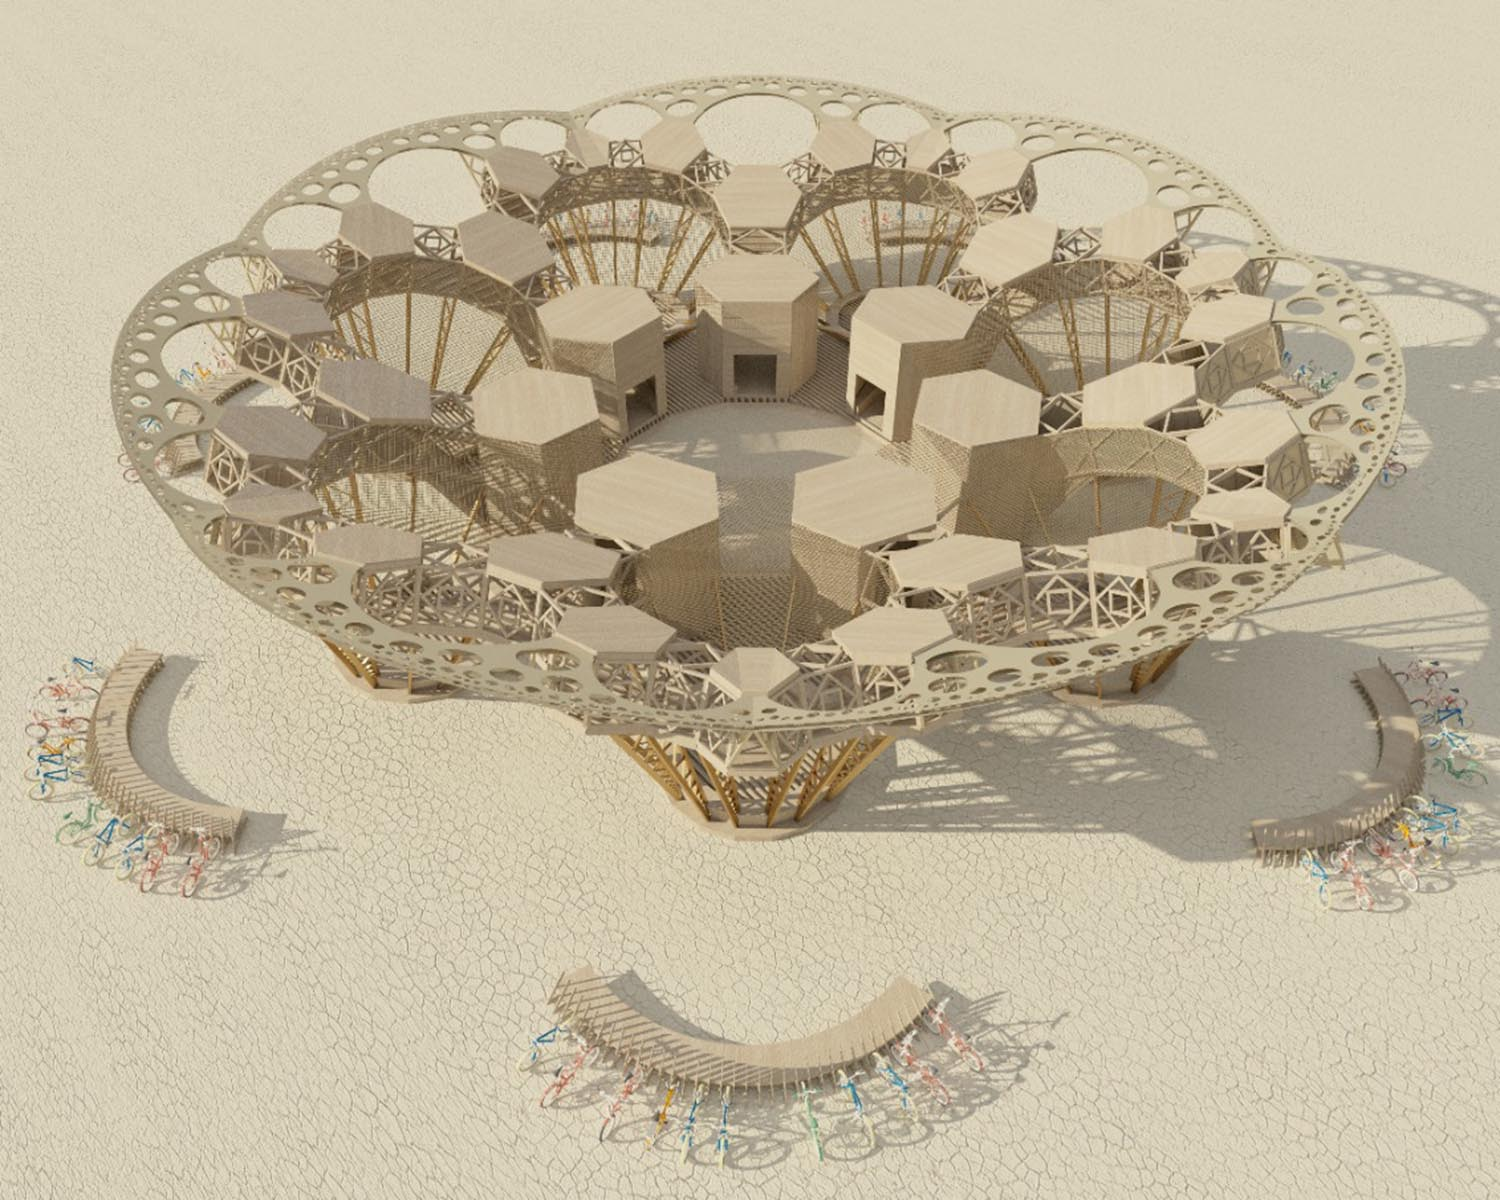 Rendering of Catharsis by Architect Arthur Mamou-Mani